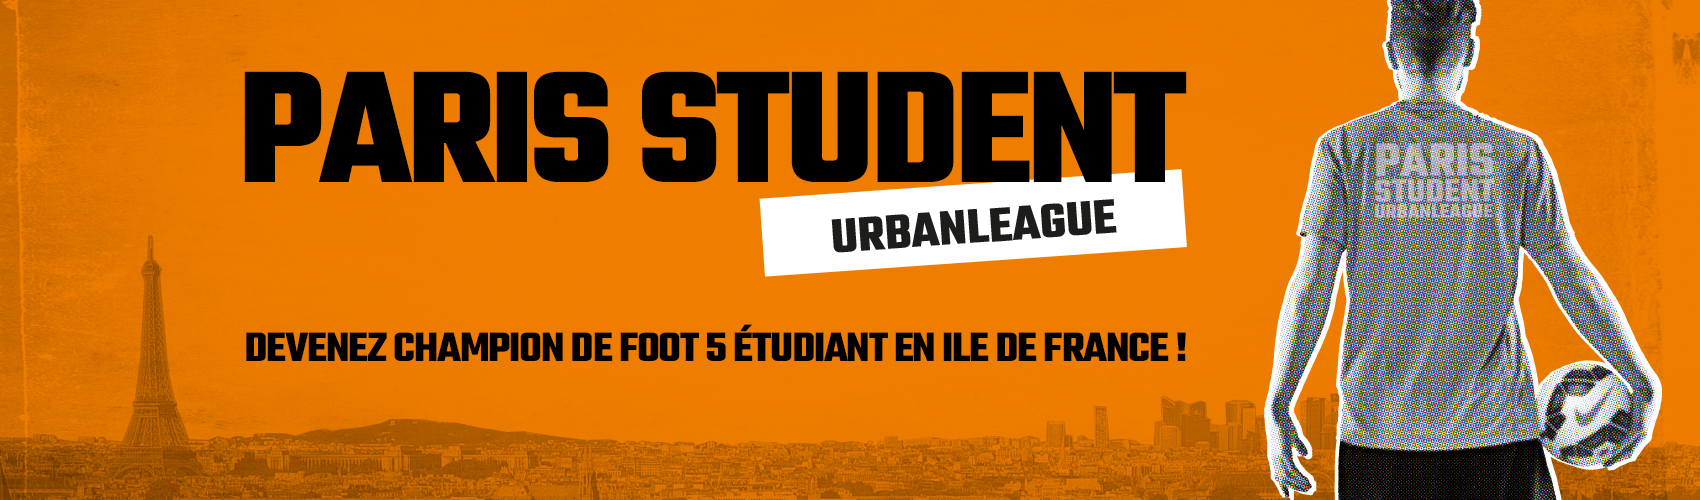 Slider-Paris-Student-League